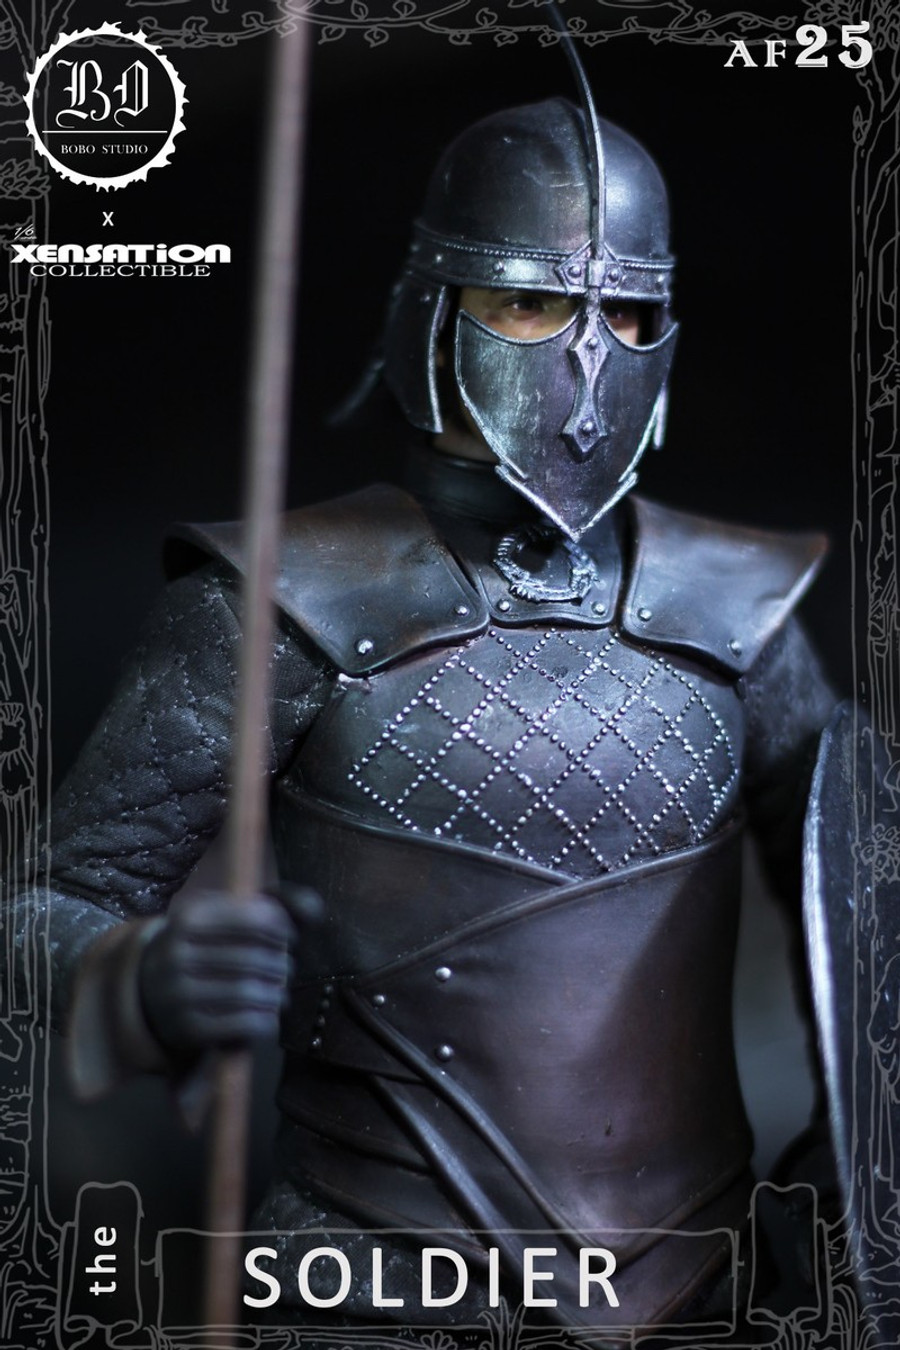 Xensation - The Soldier